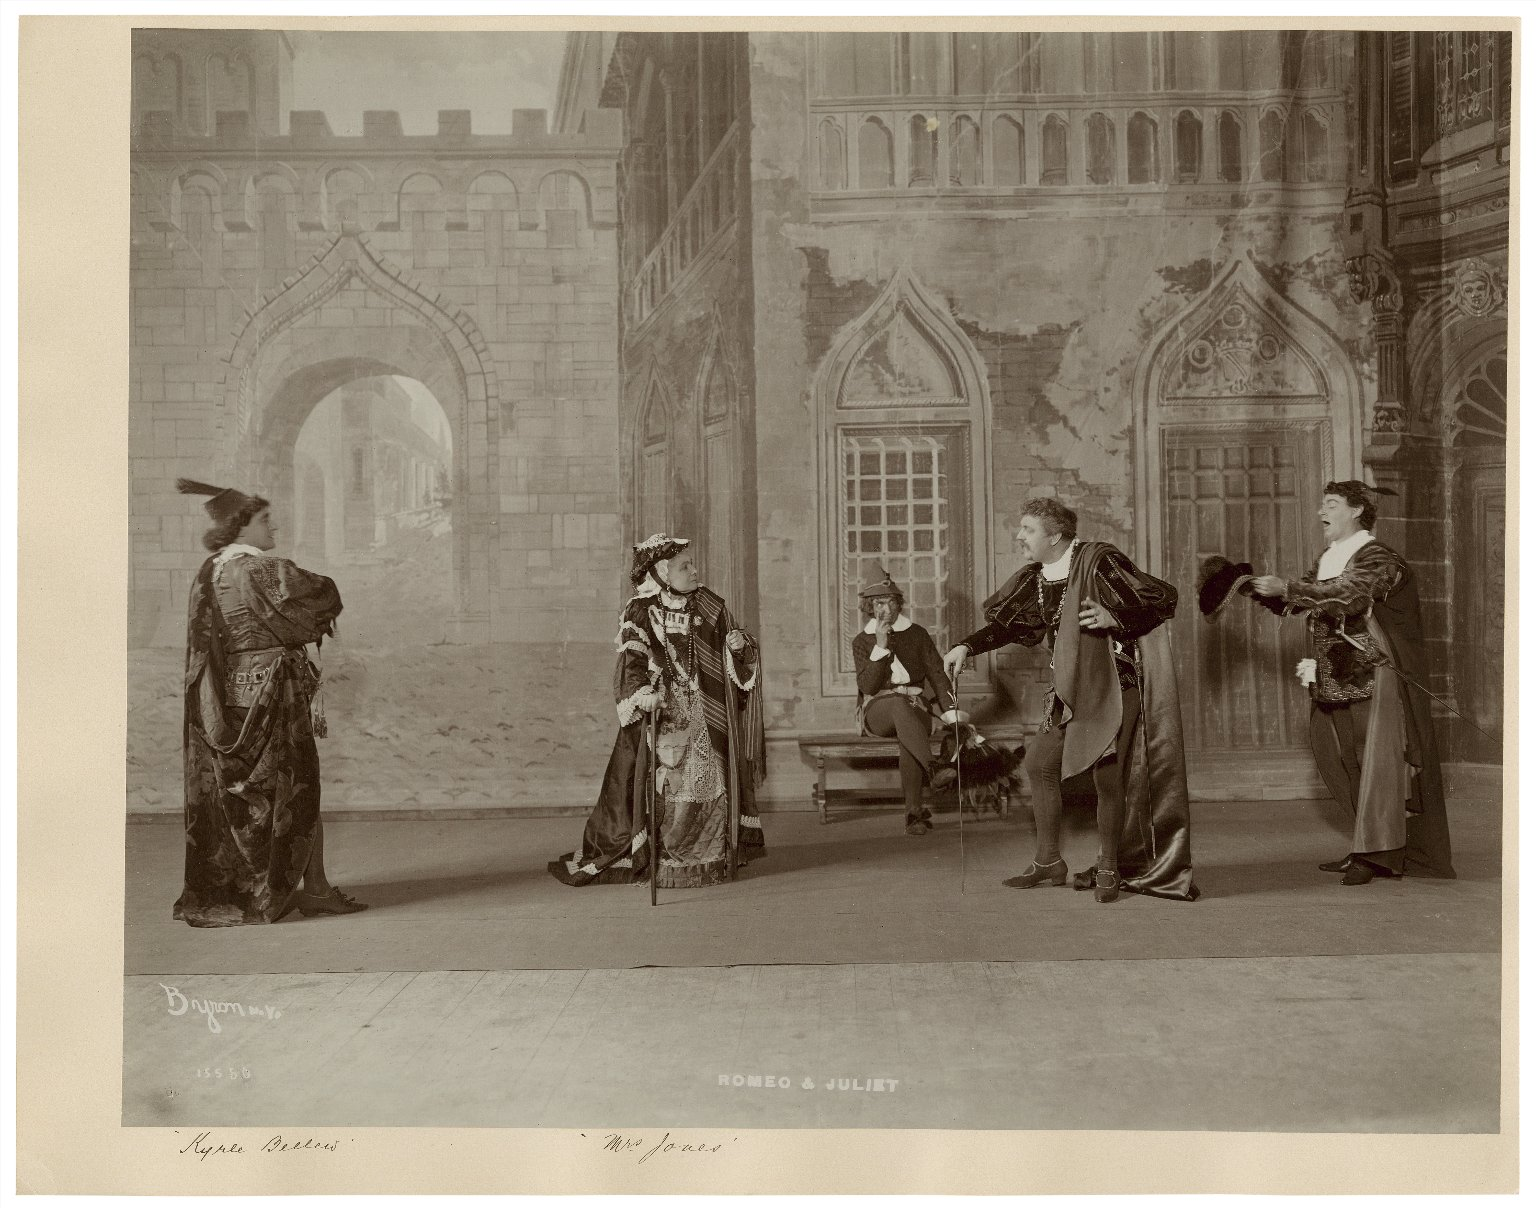 [17 photographs of a production by Liebler & Co. of] Romeo and Juliet [1903?]: Kyrle Bellew [as Romeo], Eleanor Robson [as Juliet], W.H.Thompson [as Friar Lawrence], Mrs. W.G. Jones [as the Nurse] [graphic] / Byron.